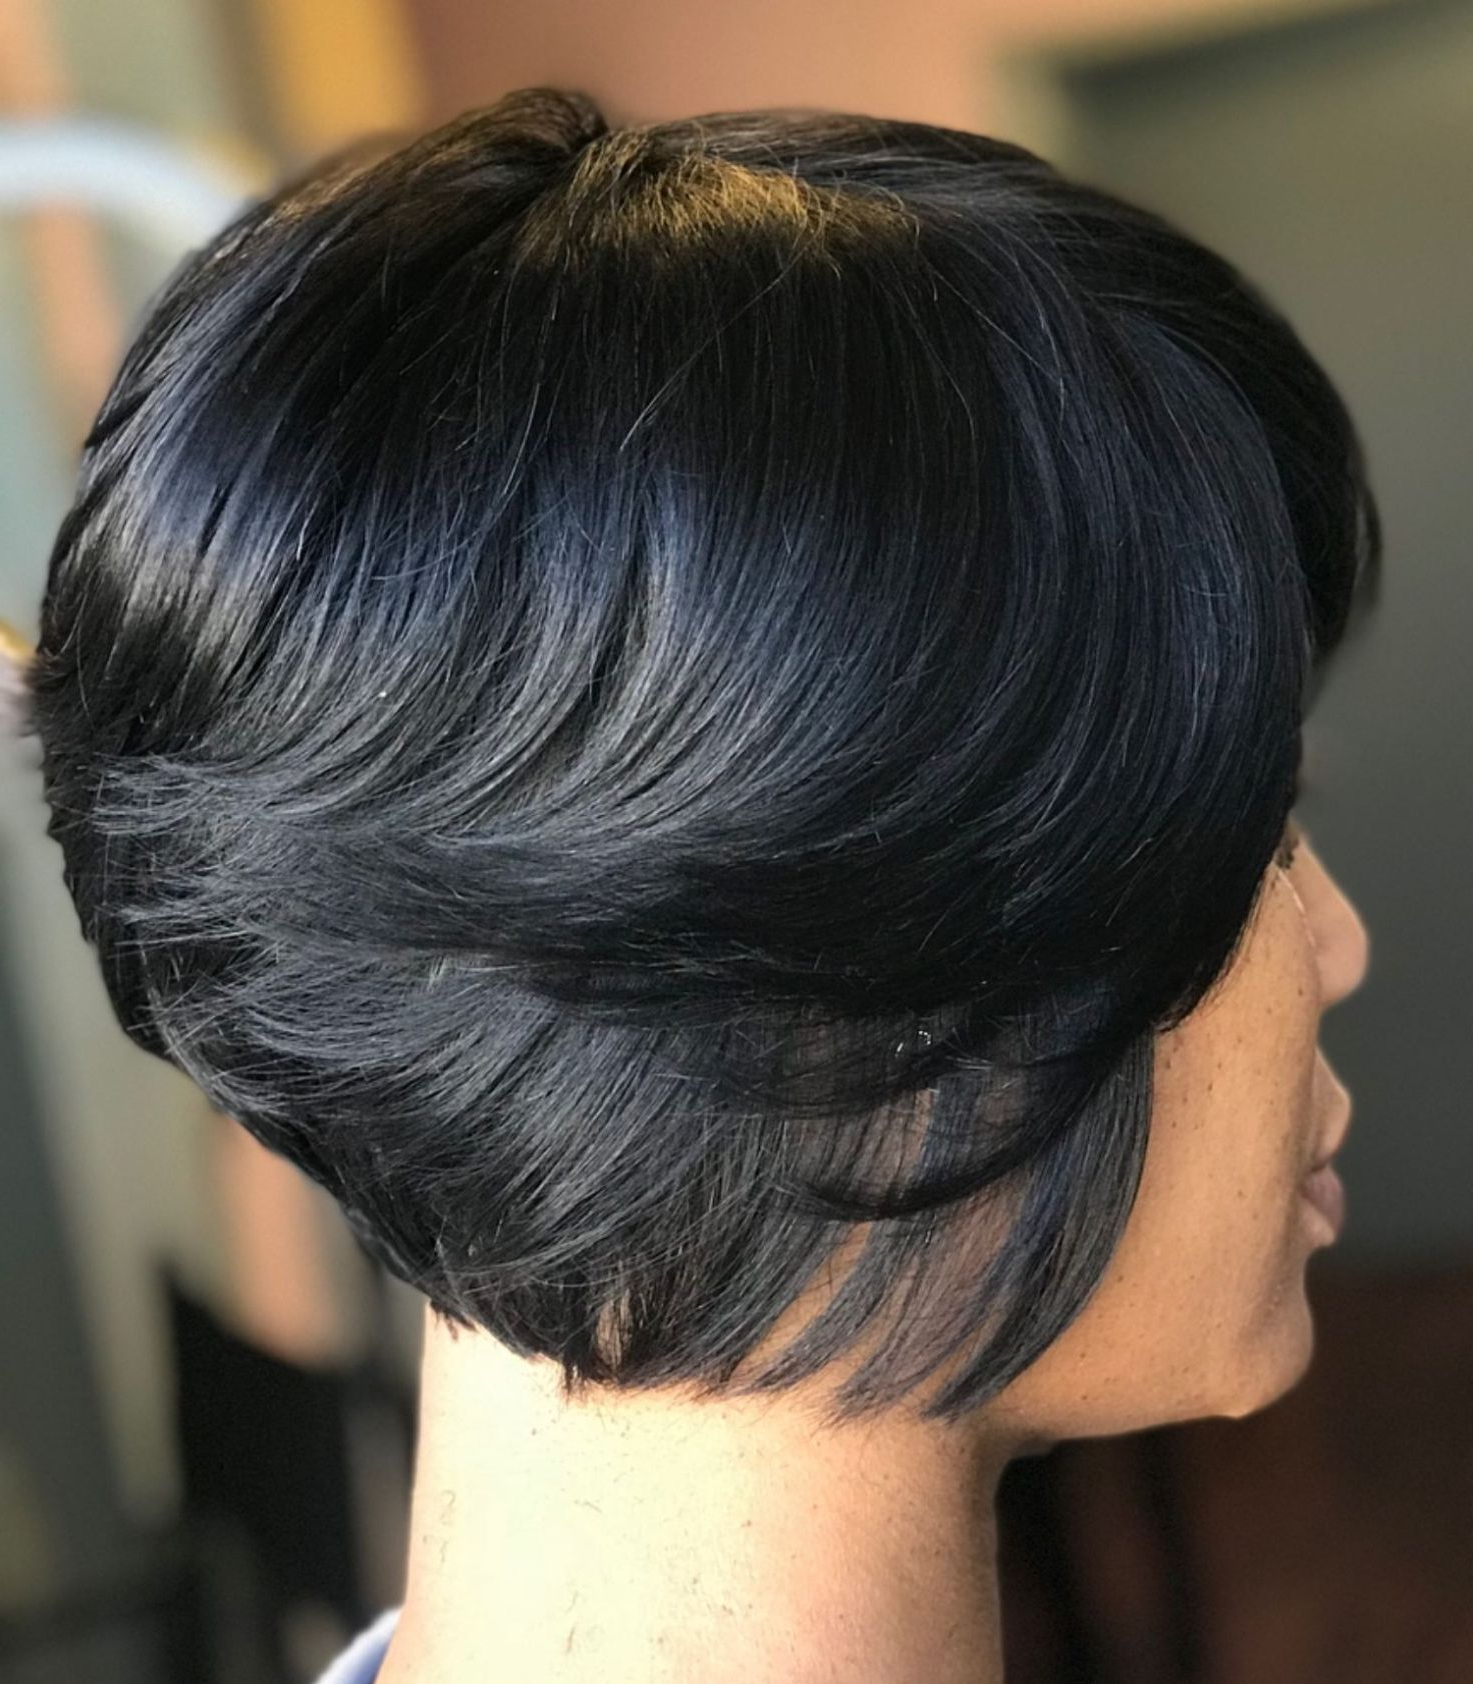 60 Showiest Bob Haircuts For Black Women | Natural Hairstyles With Regard To Black Short Layered Hairstyles (Gallery 23 of 25)